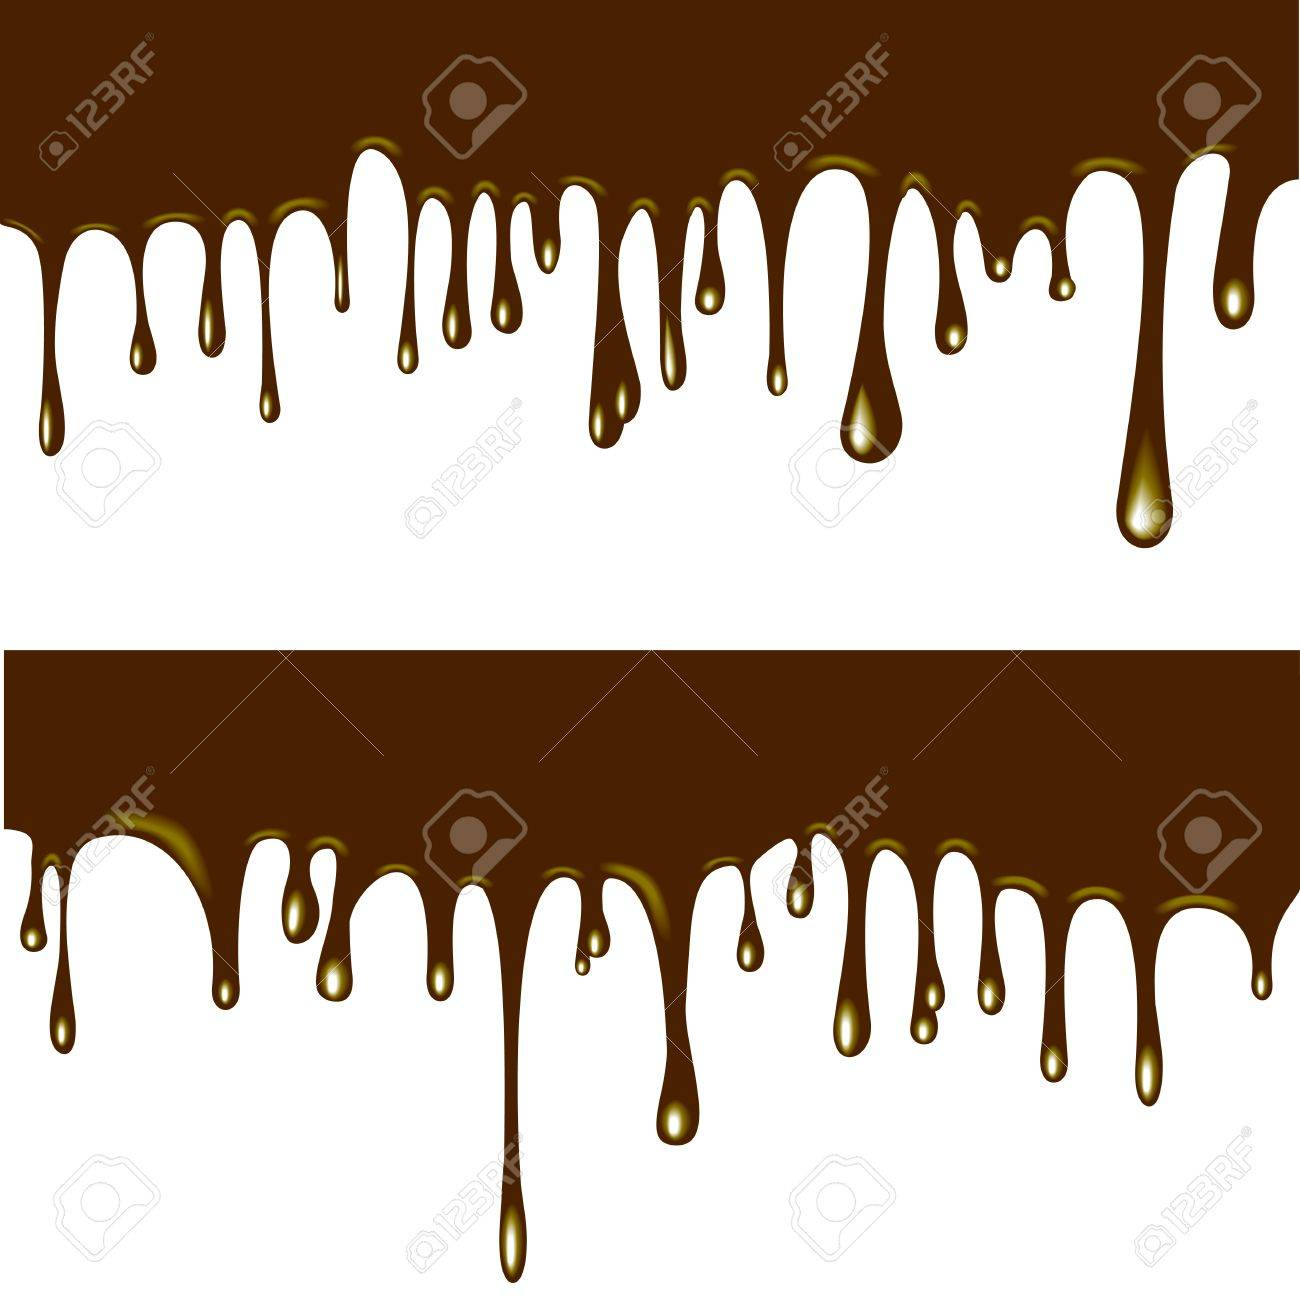 Illustration Of Flowing Chocolate Drops On White Background ...